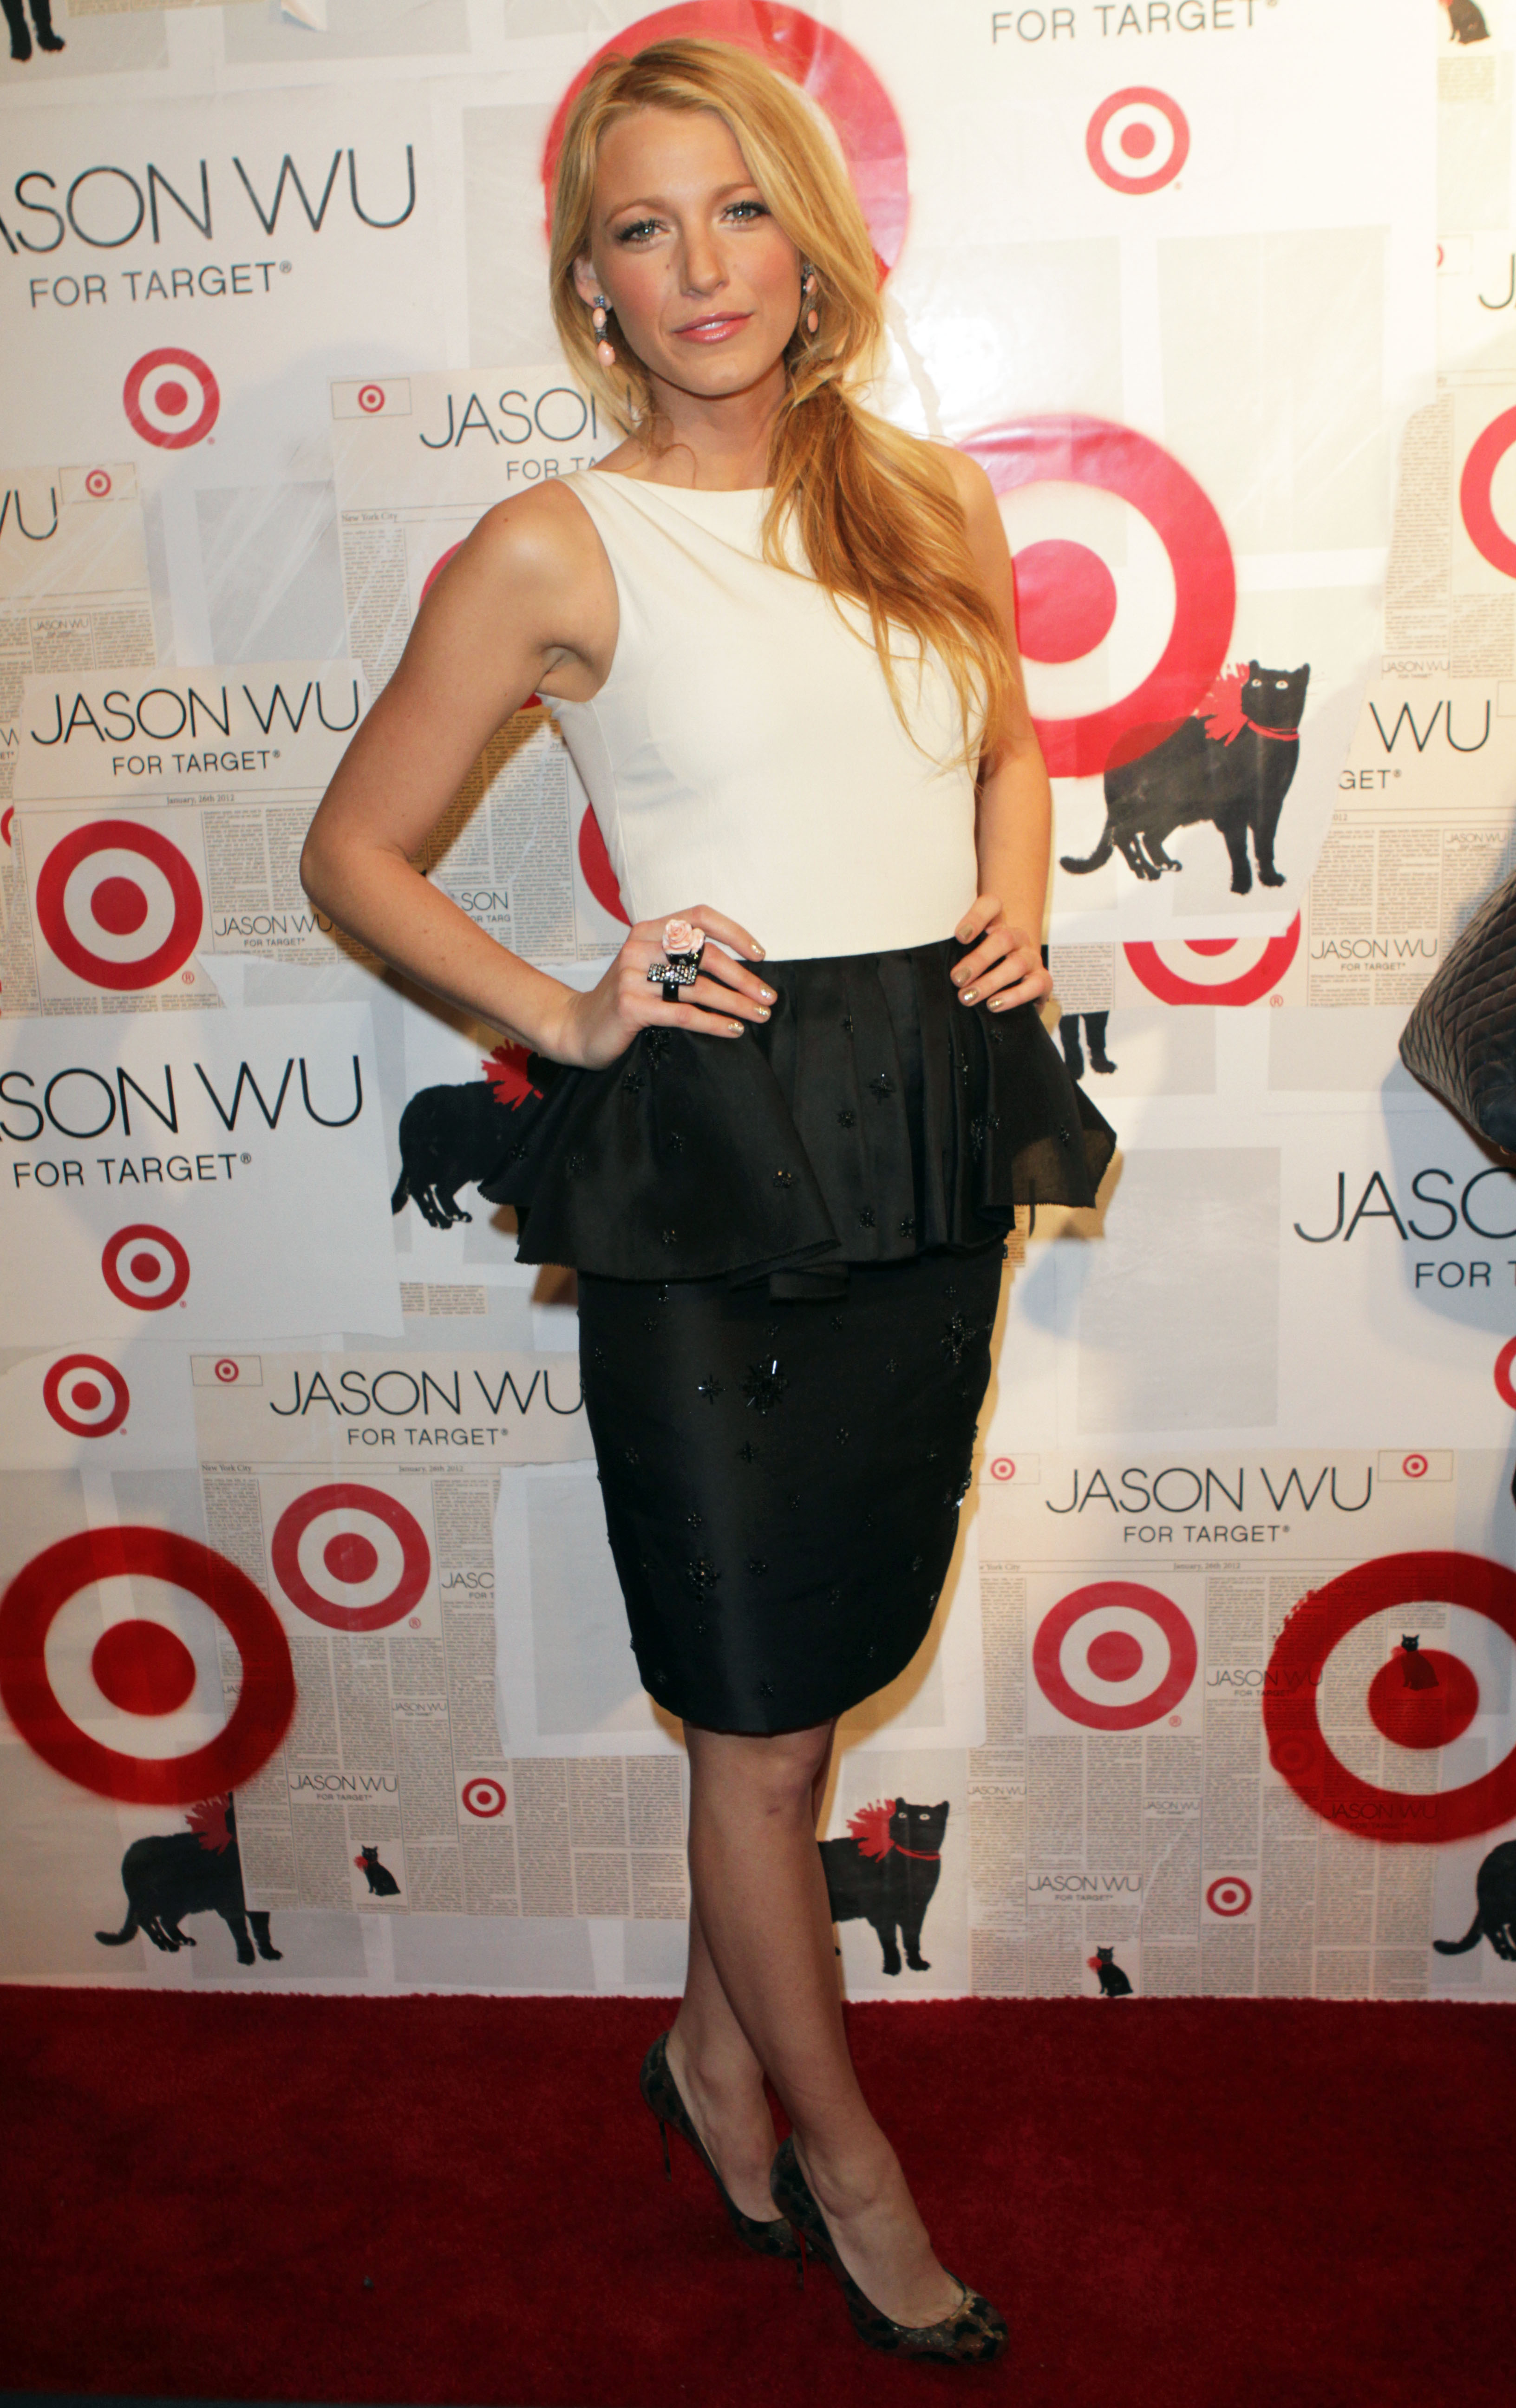 Blake Lively in a Jason Wu black and white peplum outfit at Jason Wu for Target Event in New York.